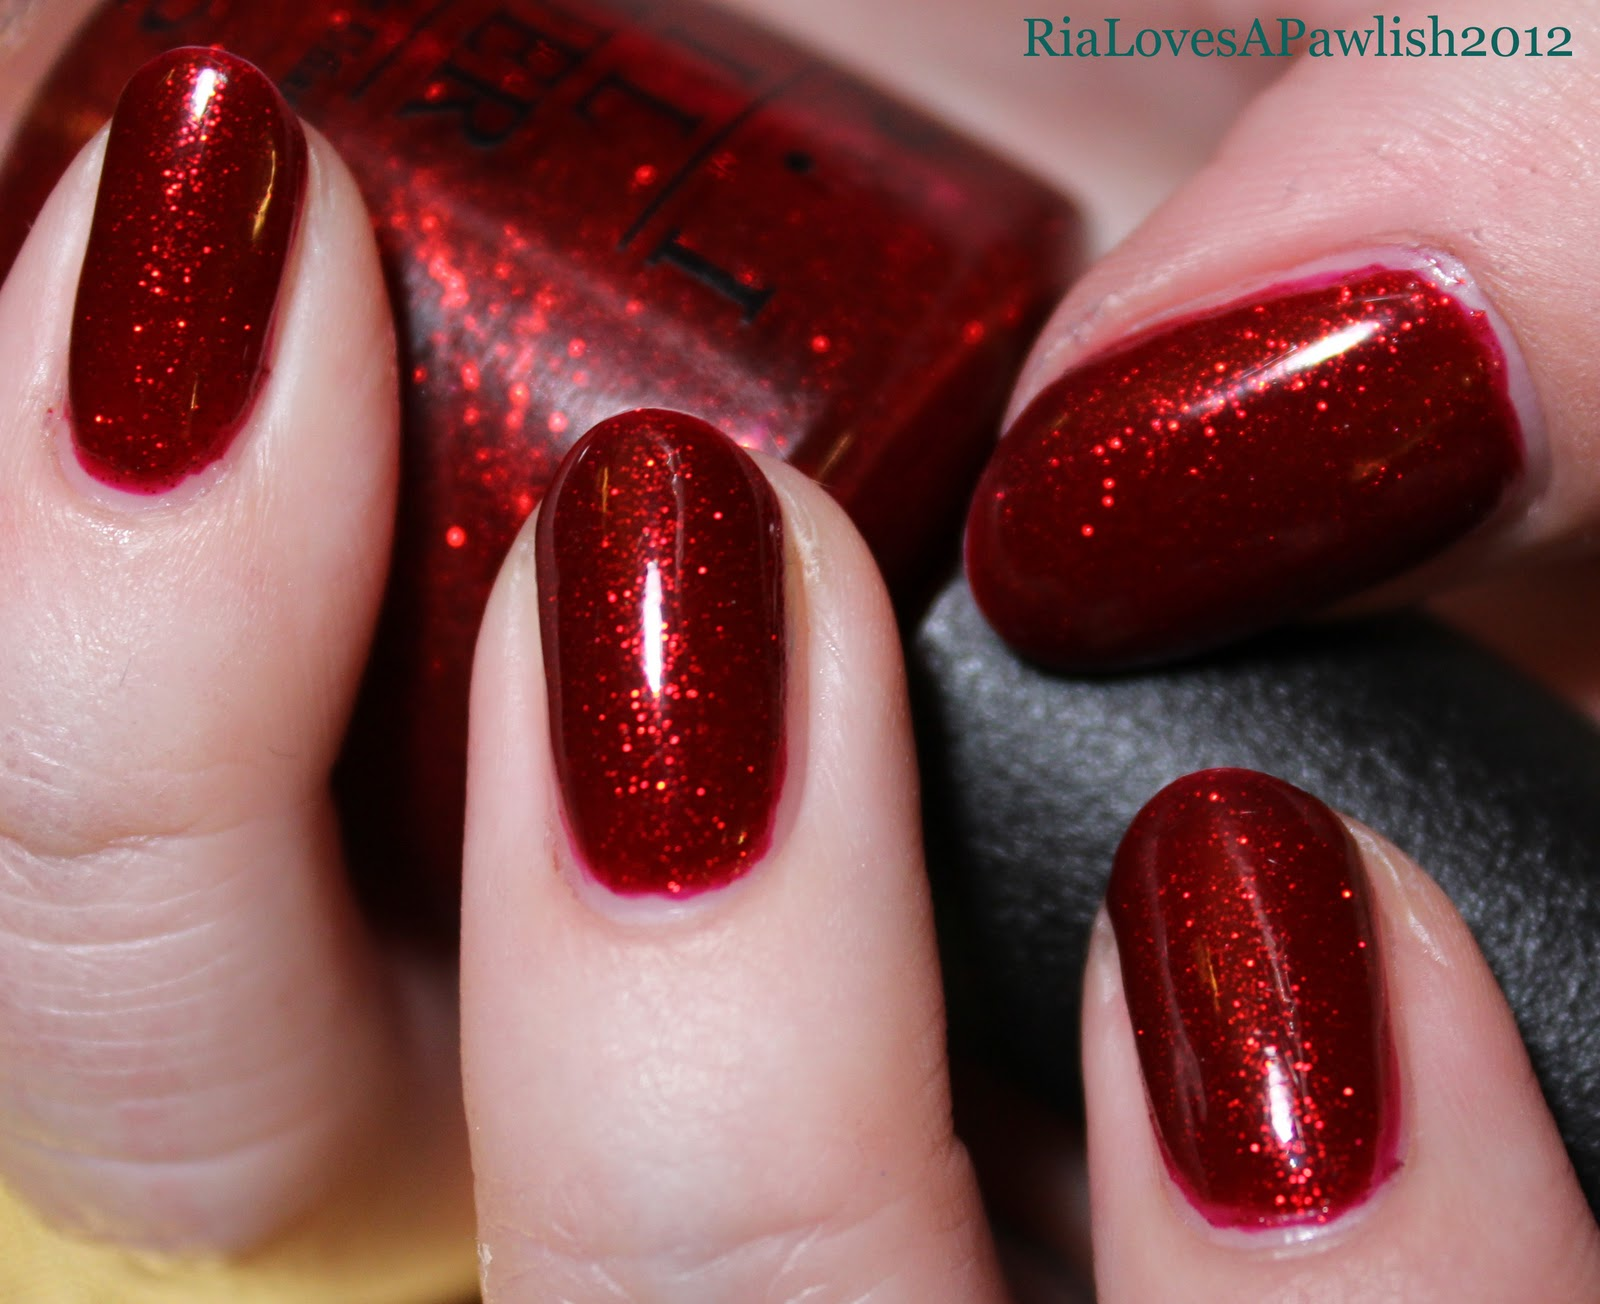 Opi An Affair In Red Square Vs Speak For Your Elf Under White Shatter